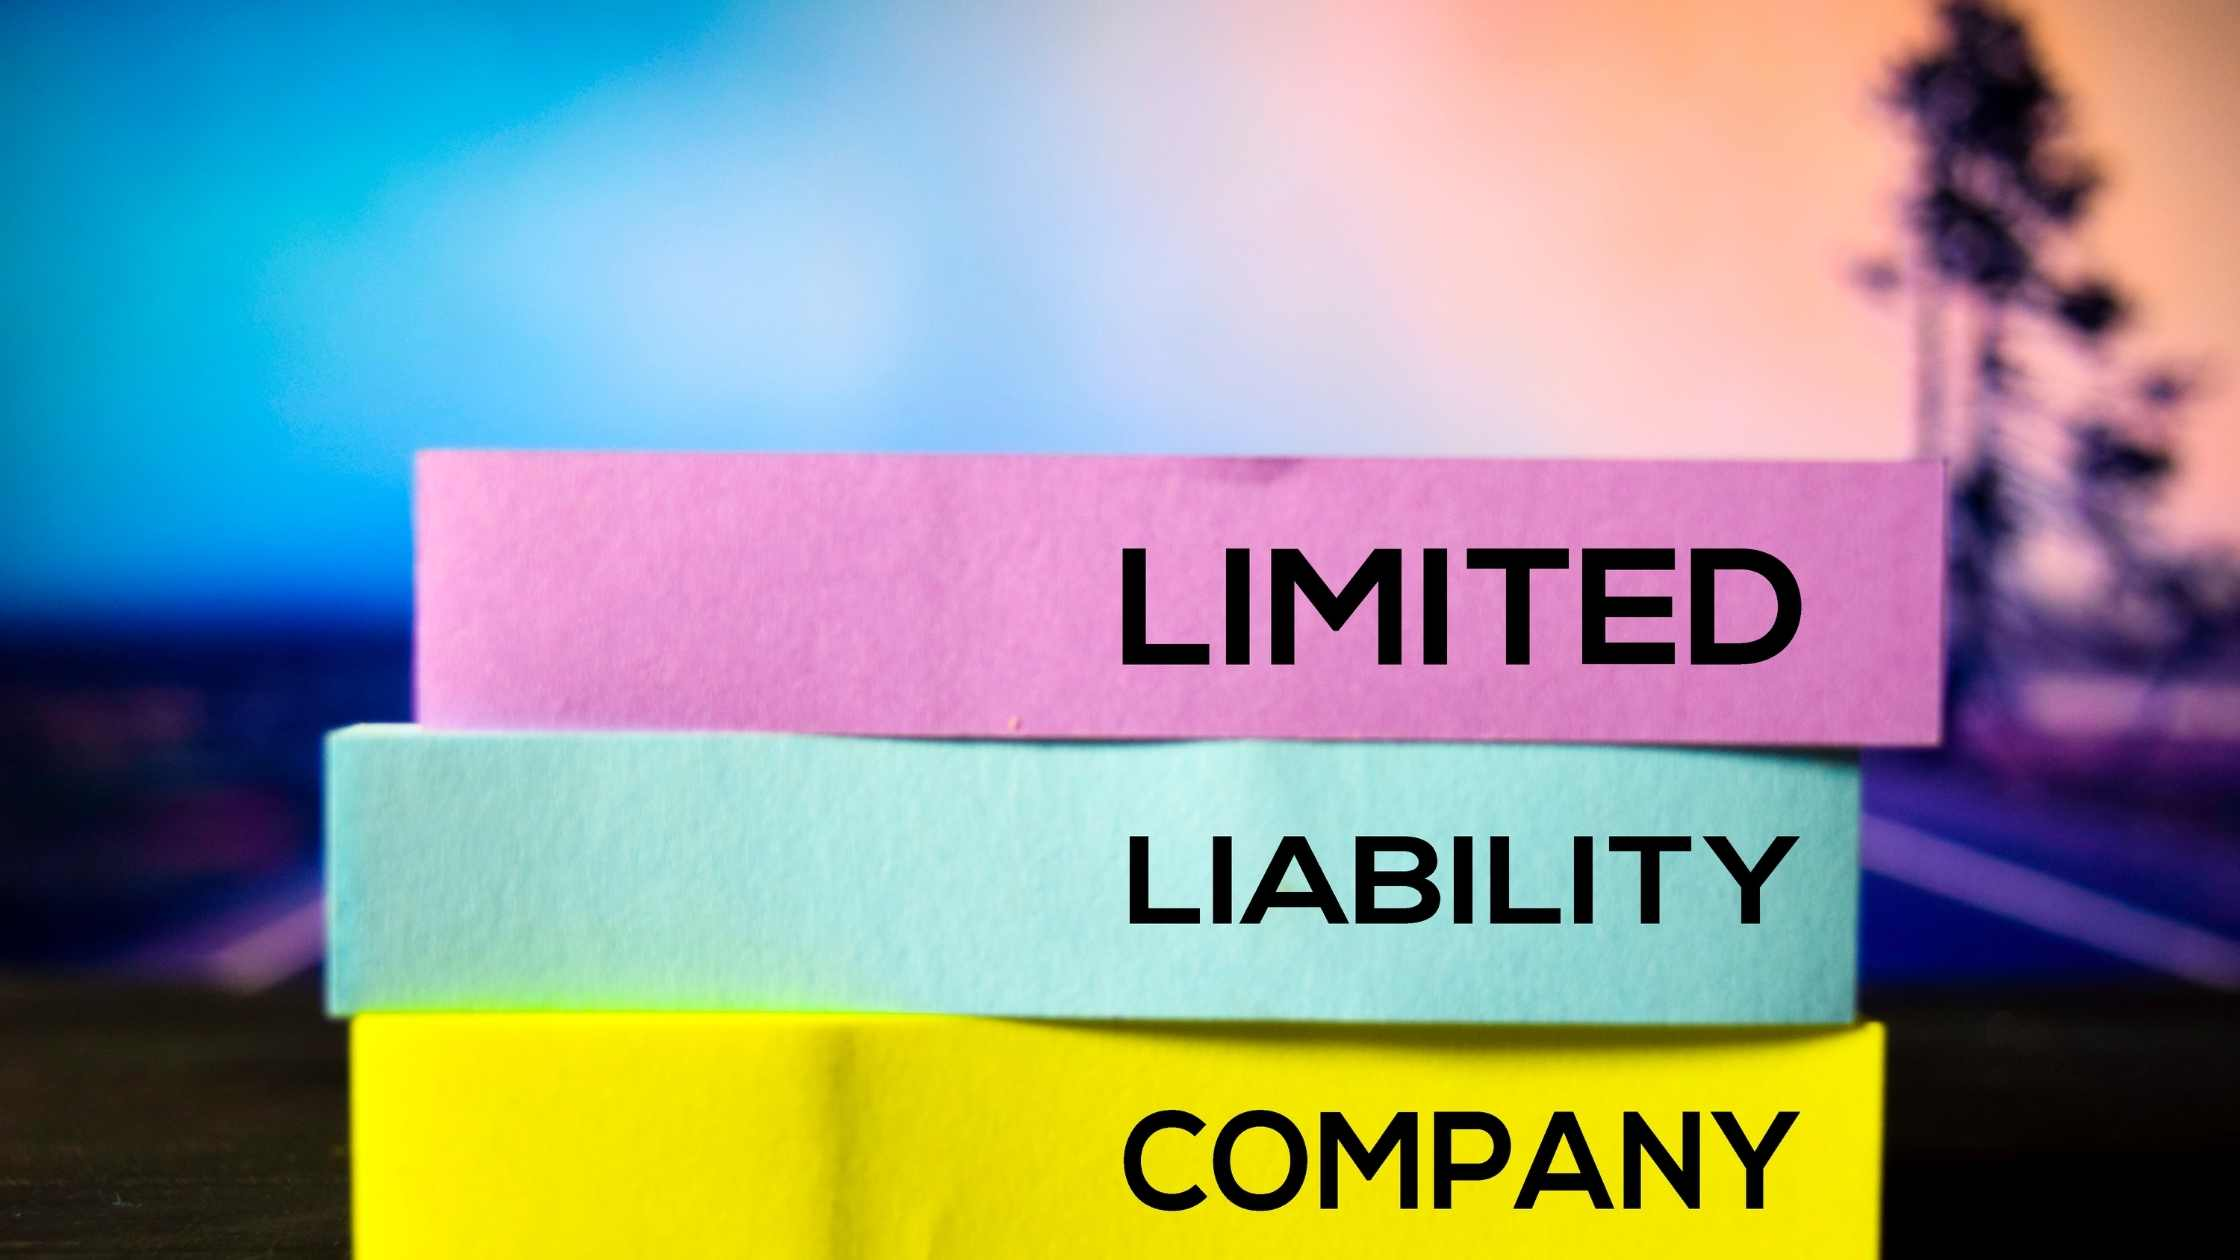 Landlord insurance for a limited company by UKLI Compare.